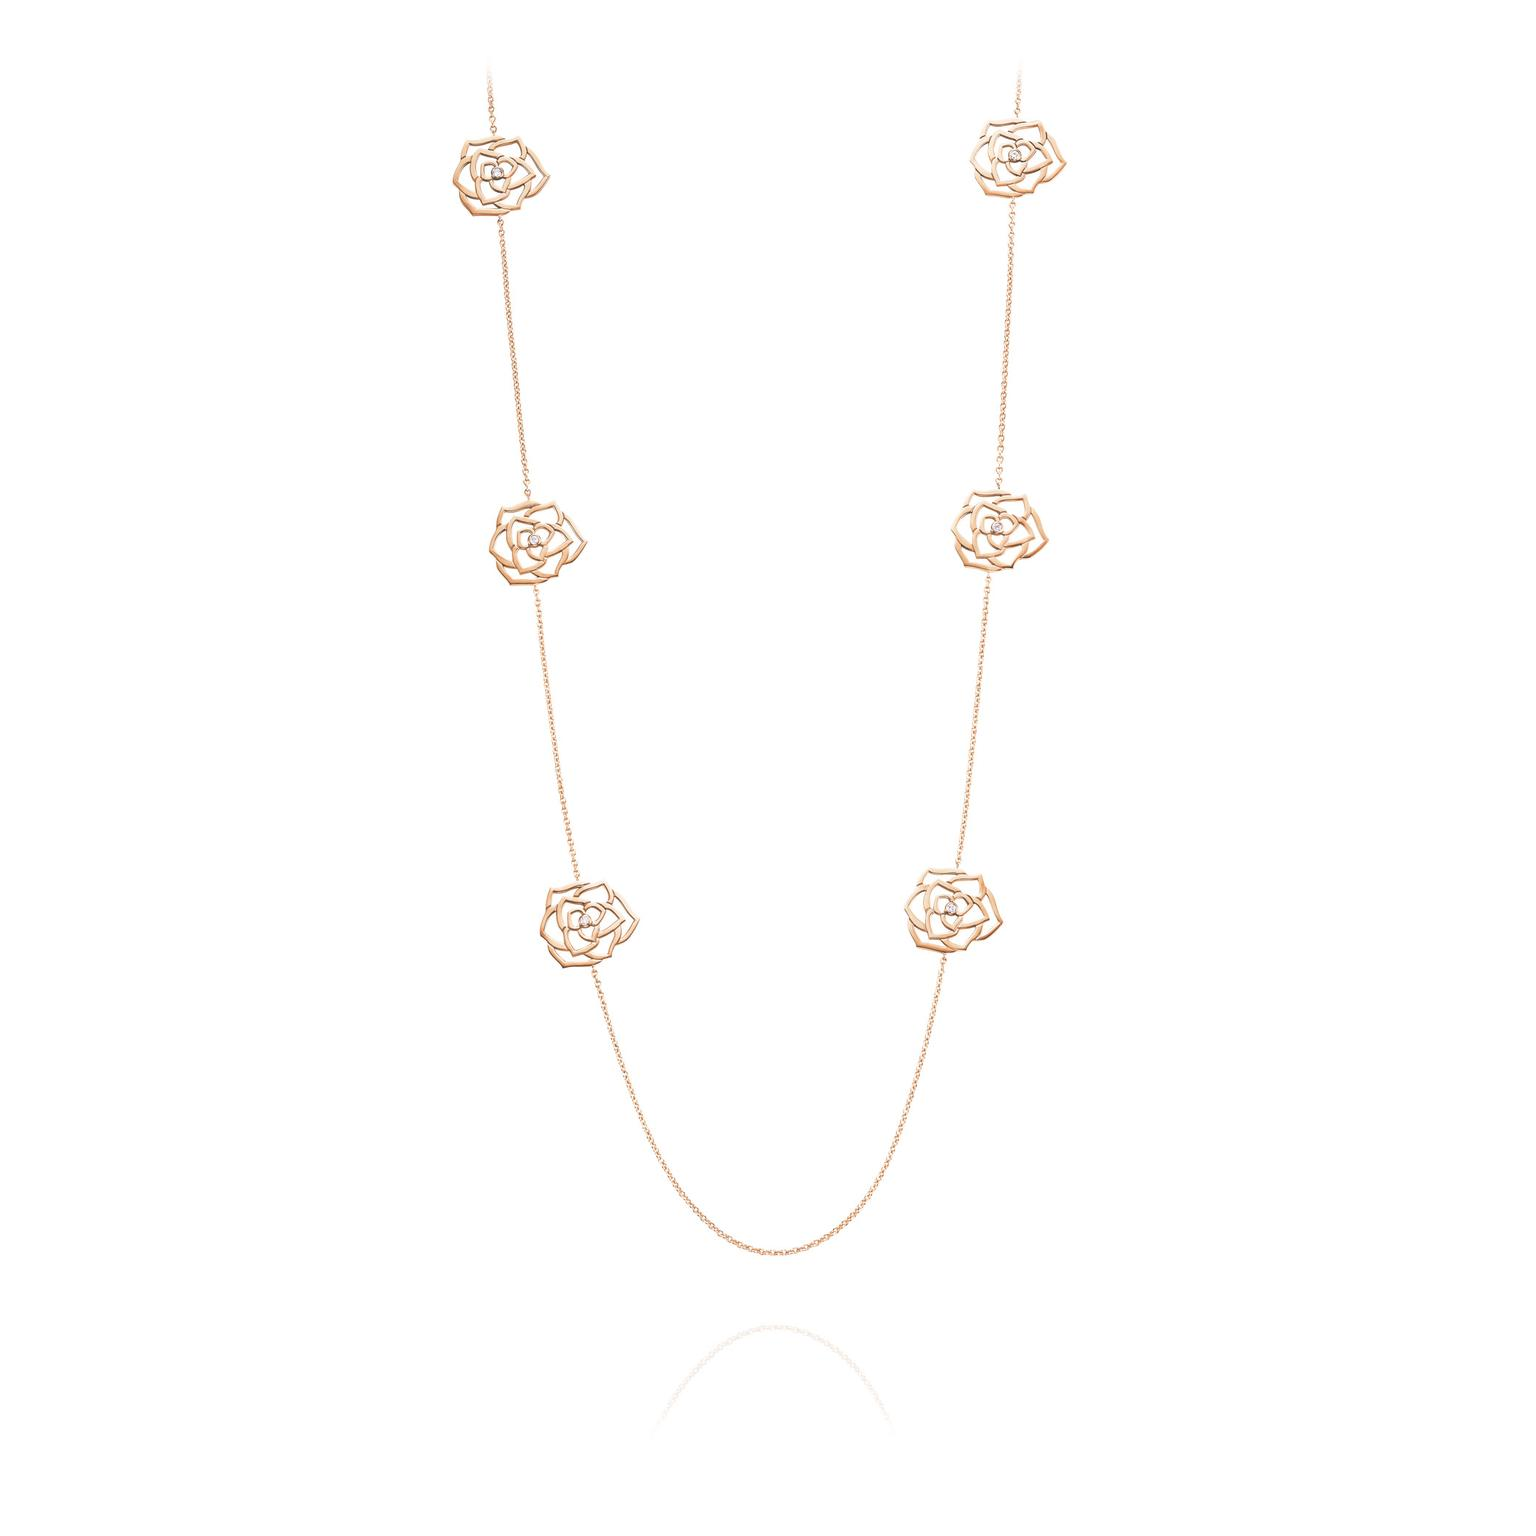 Piaget-Rose-Necklace-Zoom